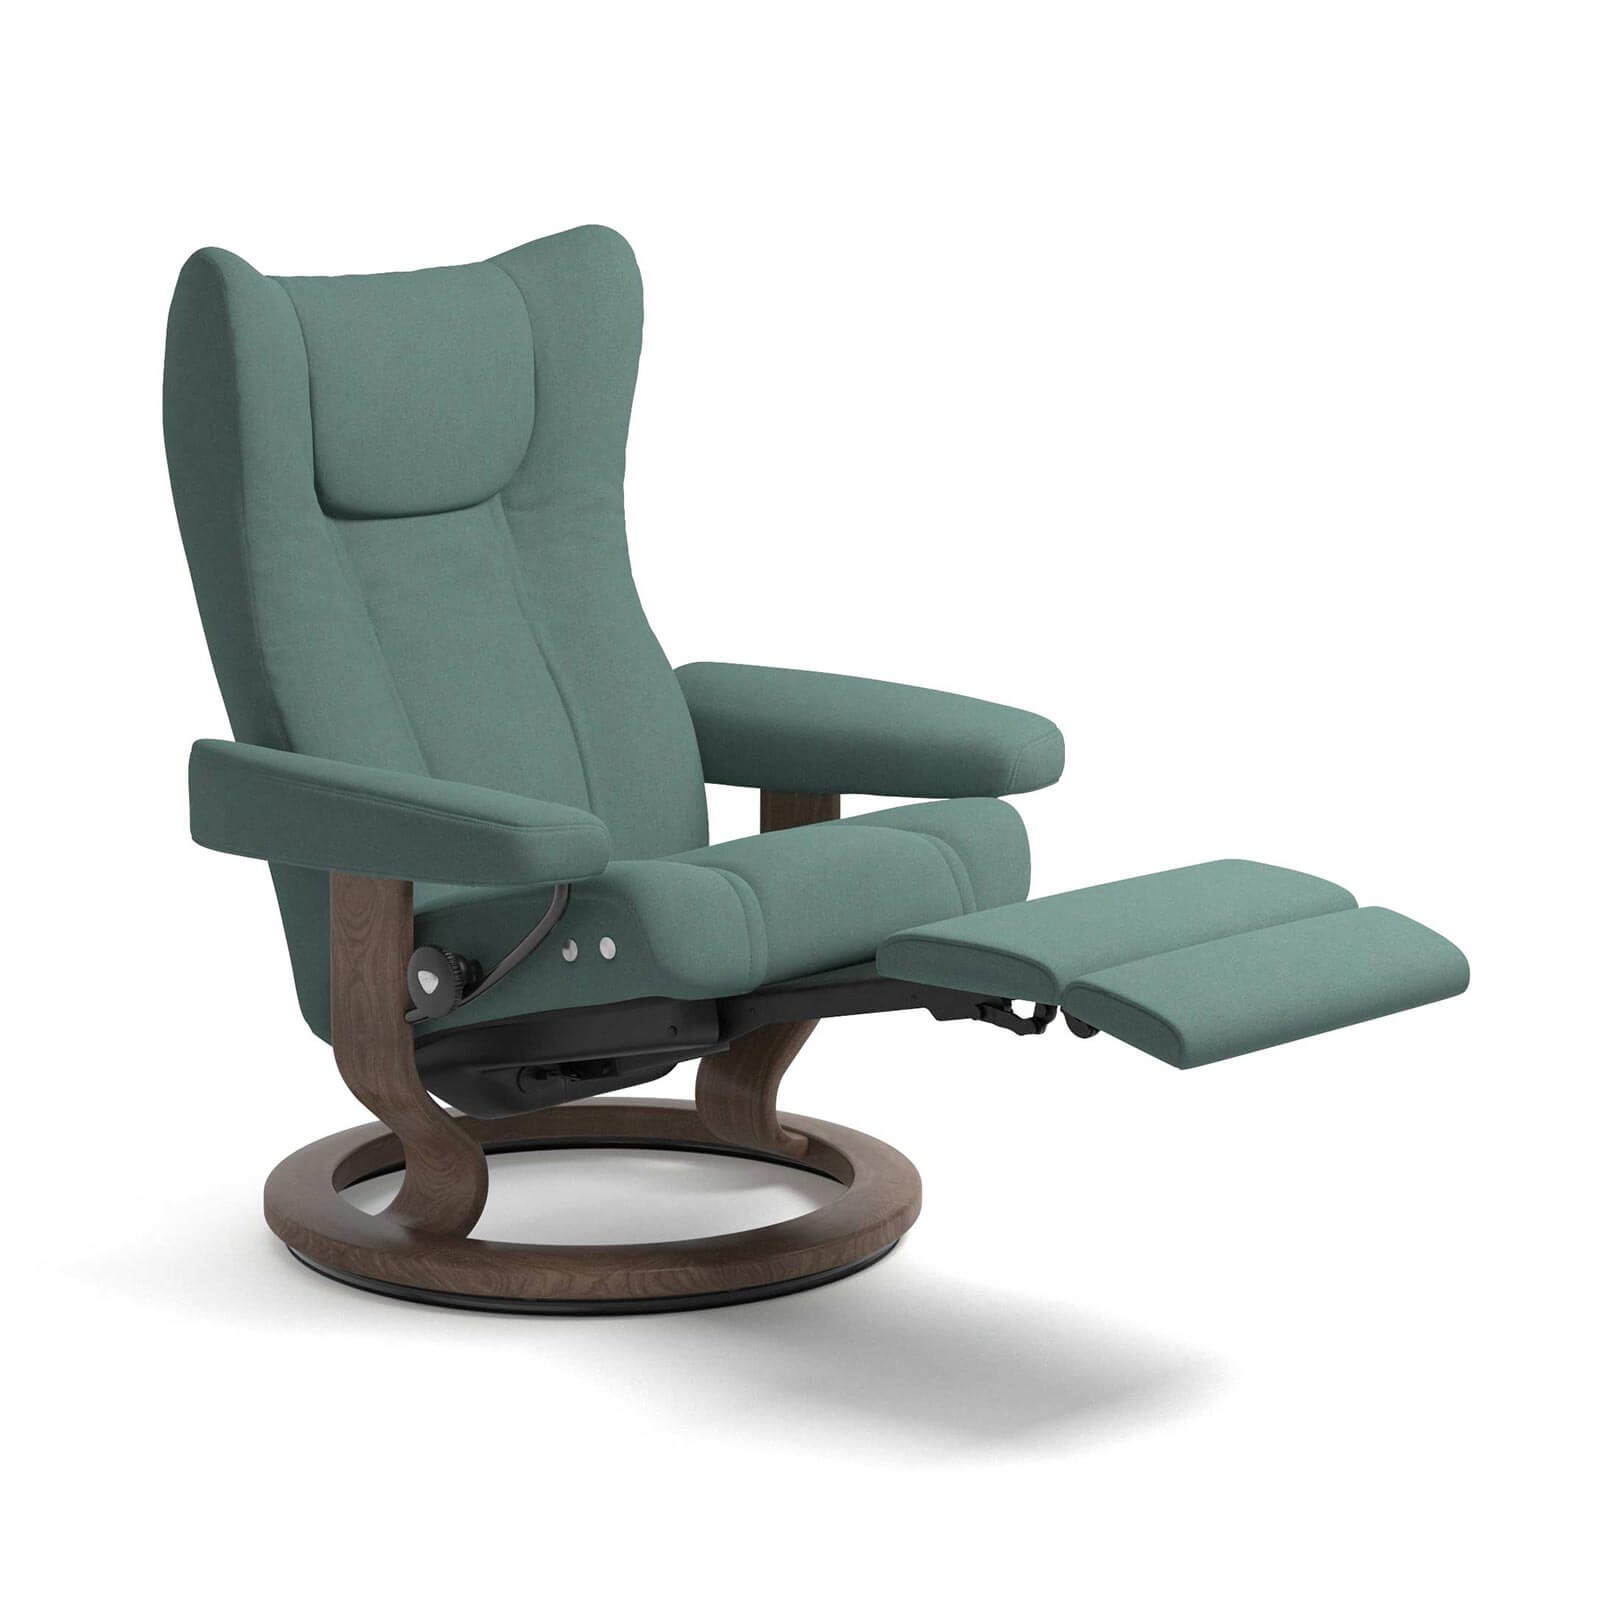 stressless sessel wing legcomfort aqua stressless shop. Black Bedroom Furniture Sets. Home Design Ideas